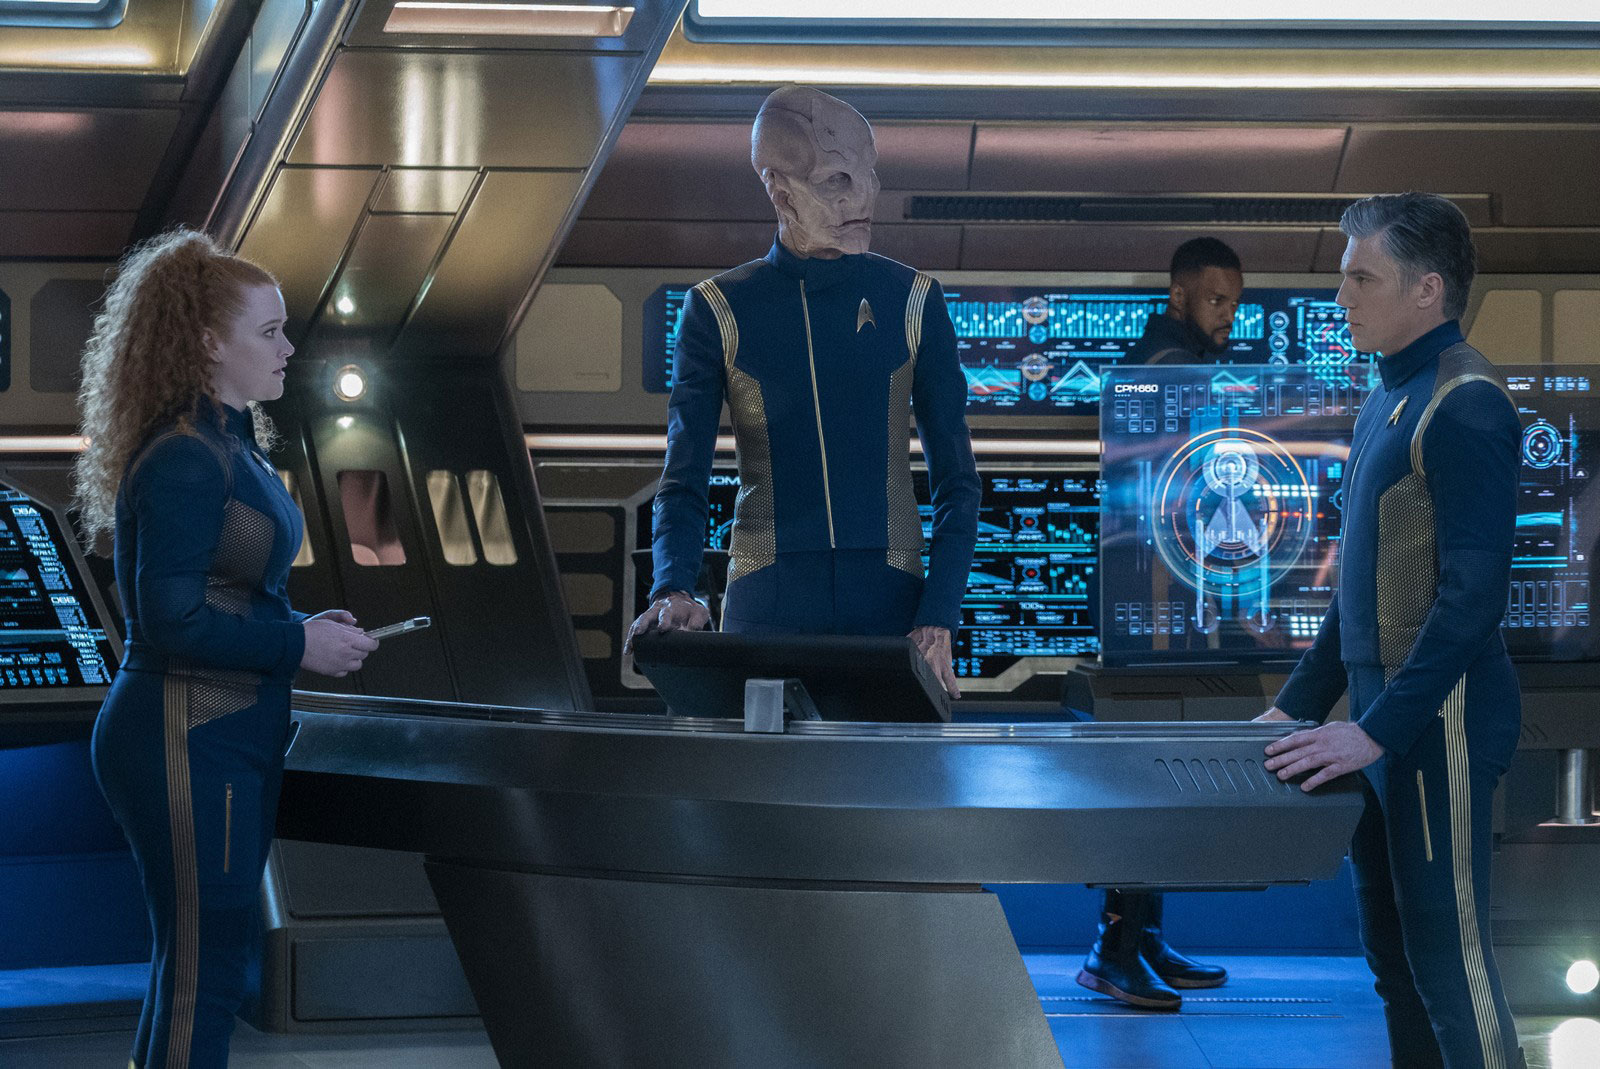 Mary Wiseman as Sylvia Tilly, Doug Jones as Saru and Anson Mount as Christopher Pike